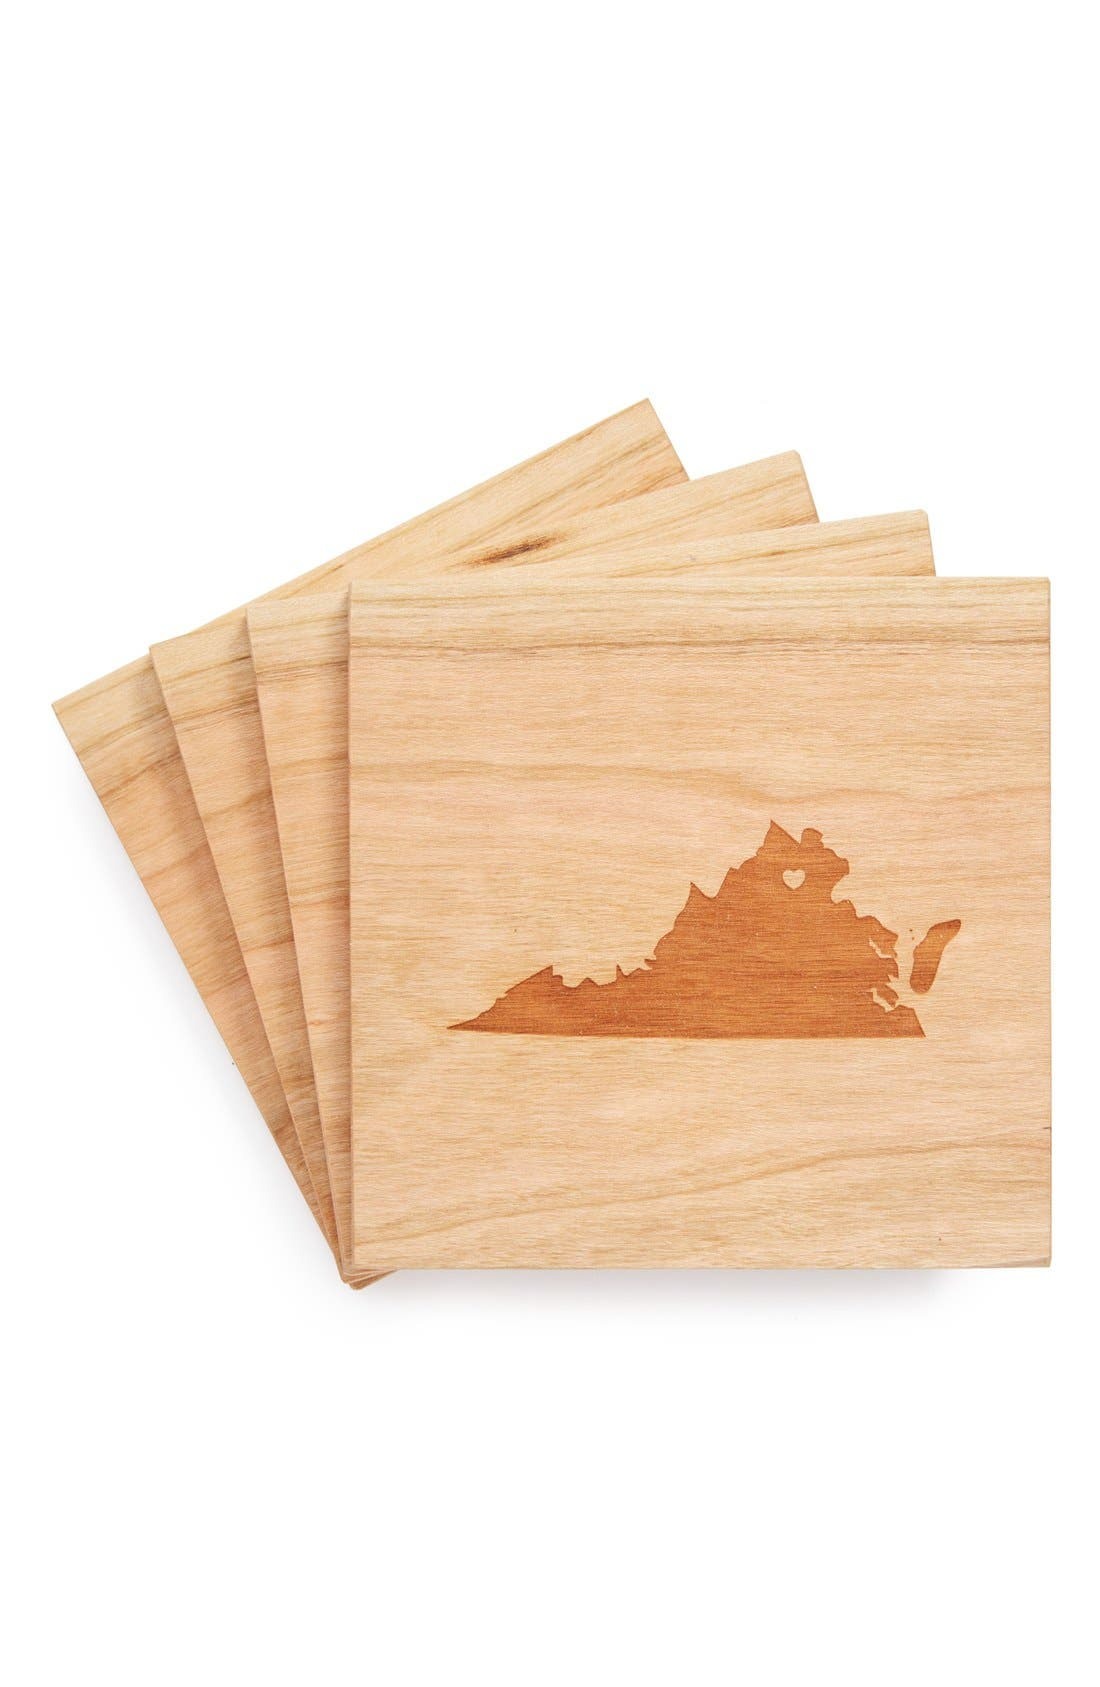 'State Silhouette' Coasters,                             Main thumbnail 46, color,